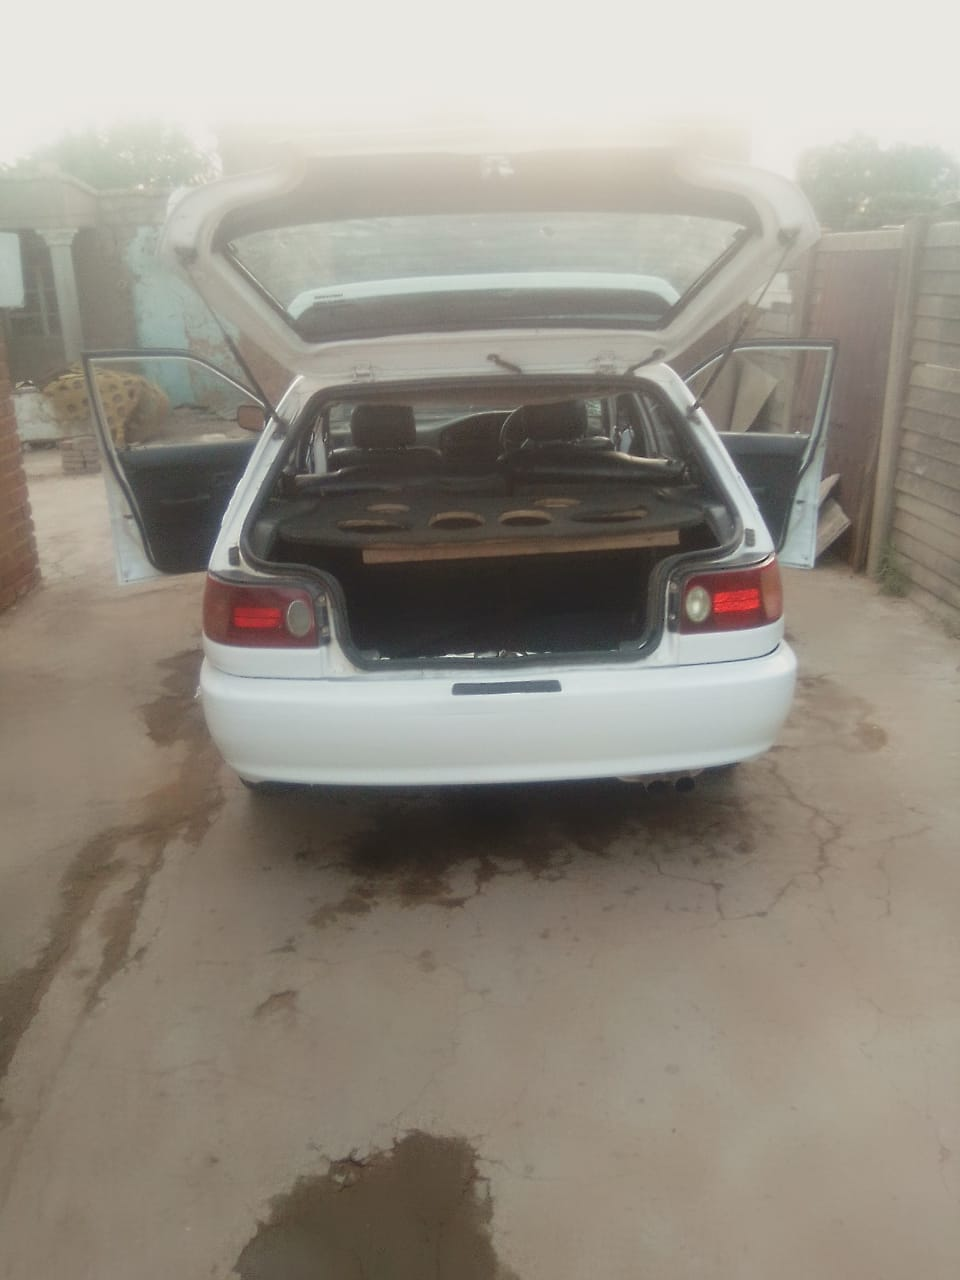 Toyota Tazz 16 velve all papers in order